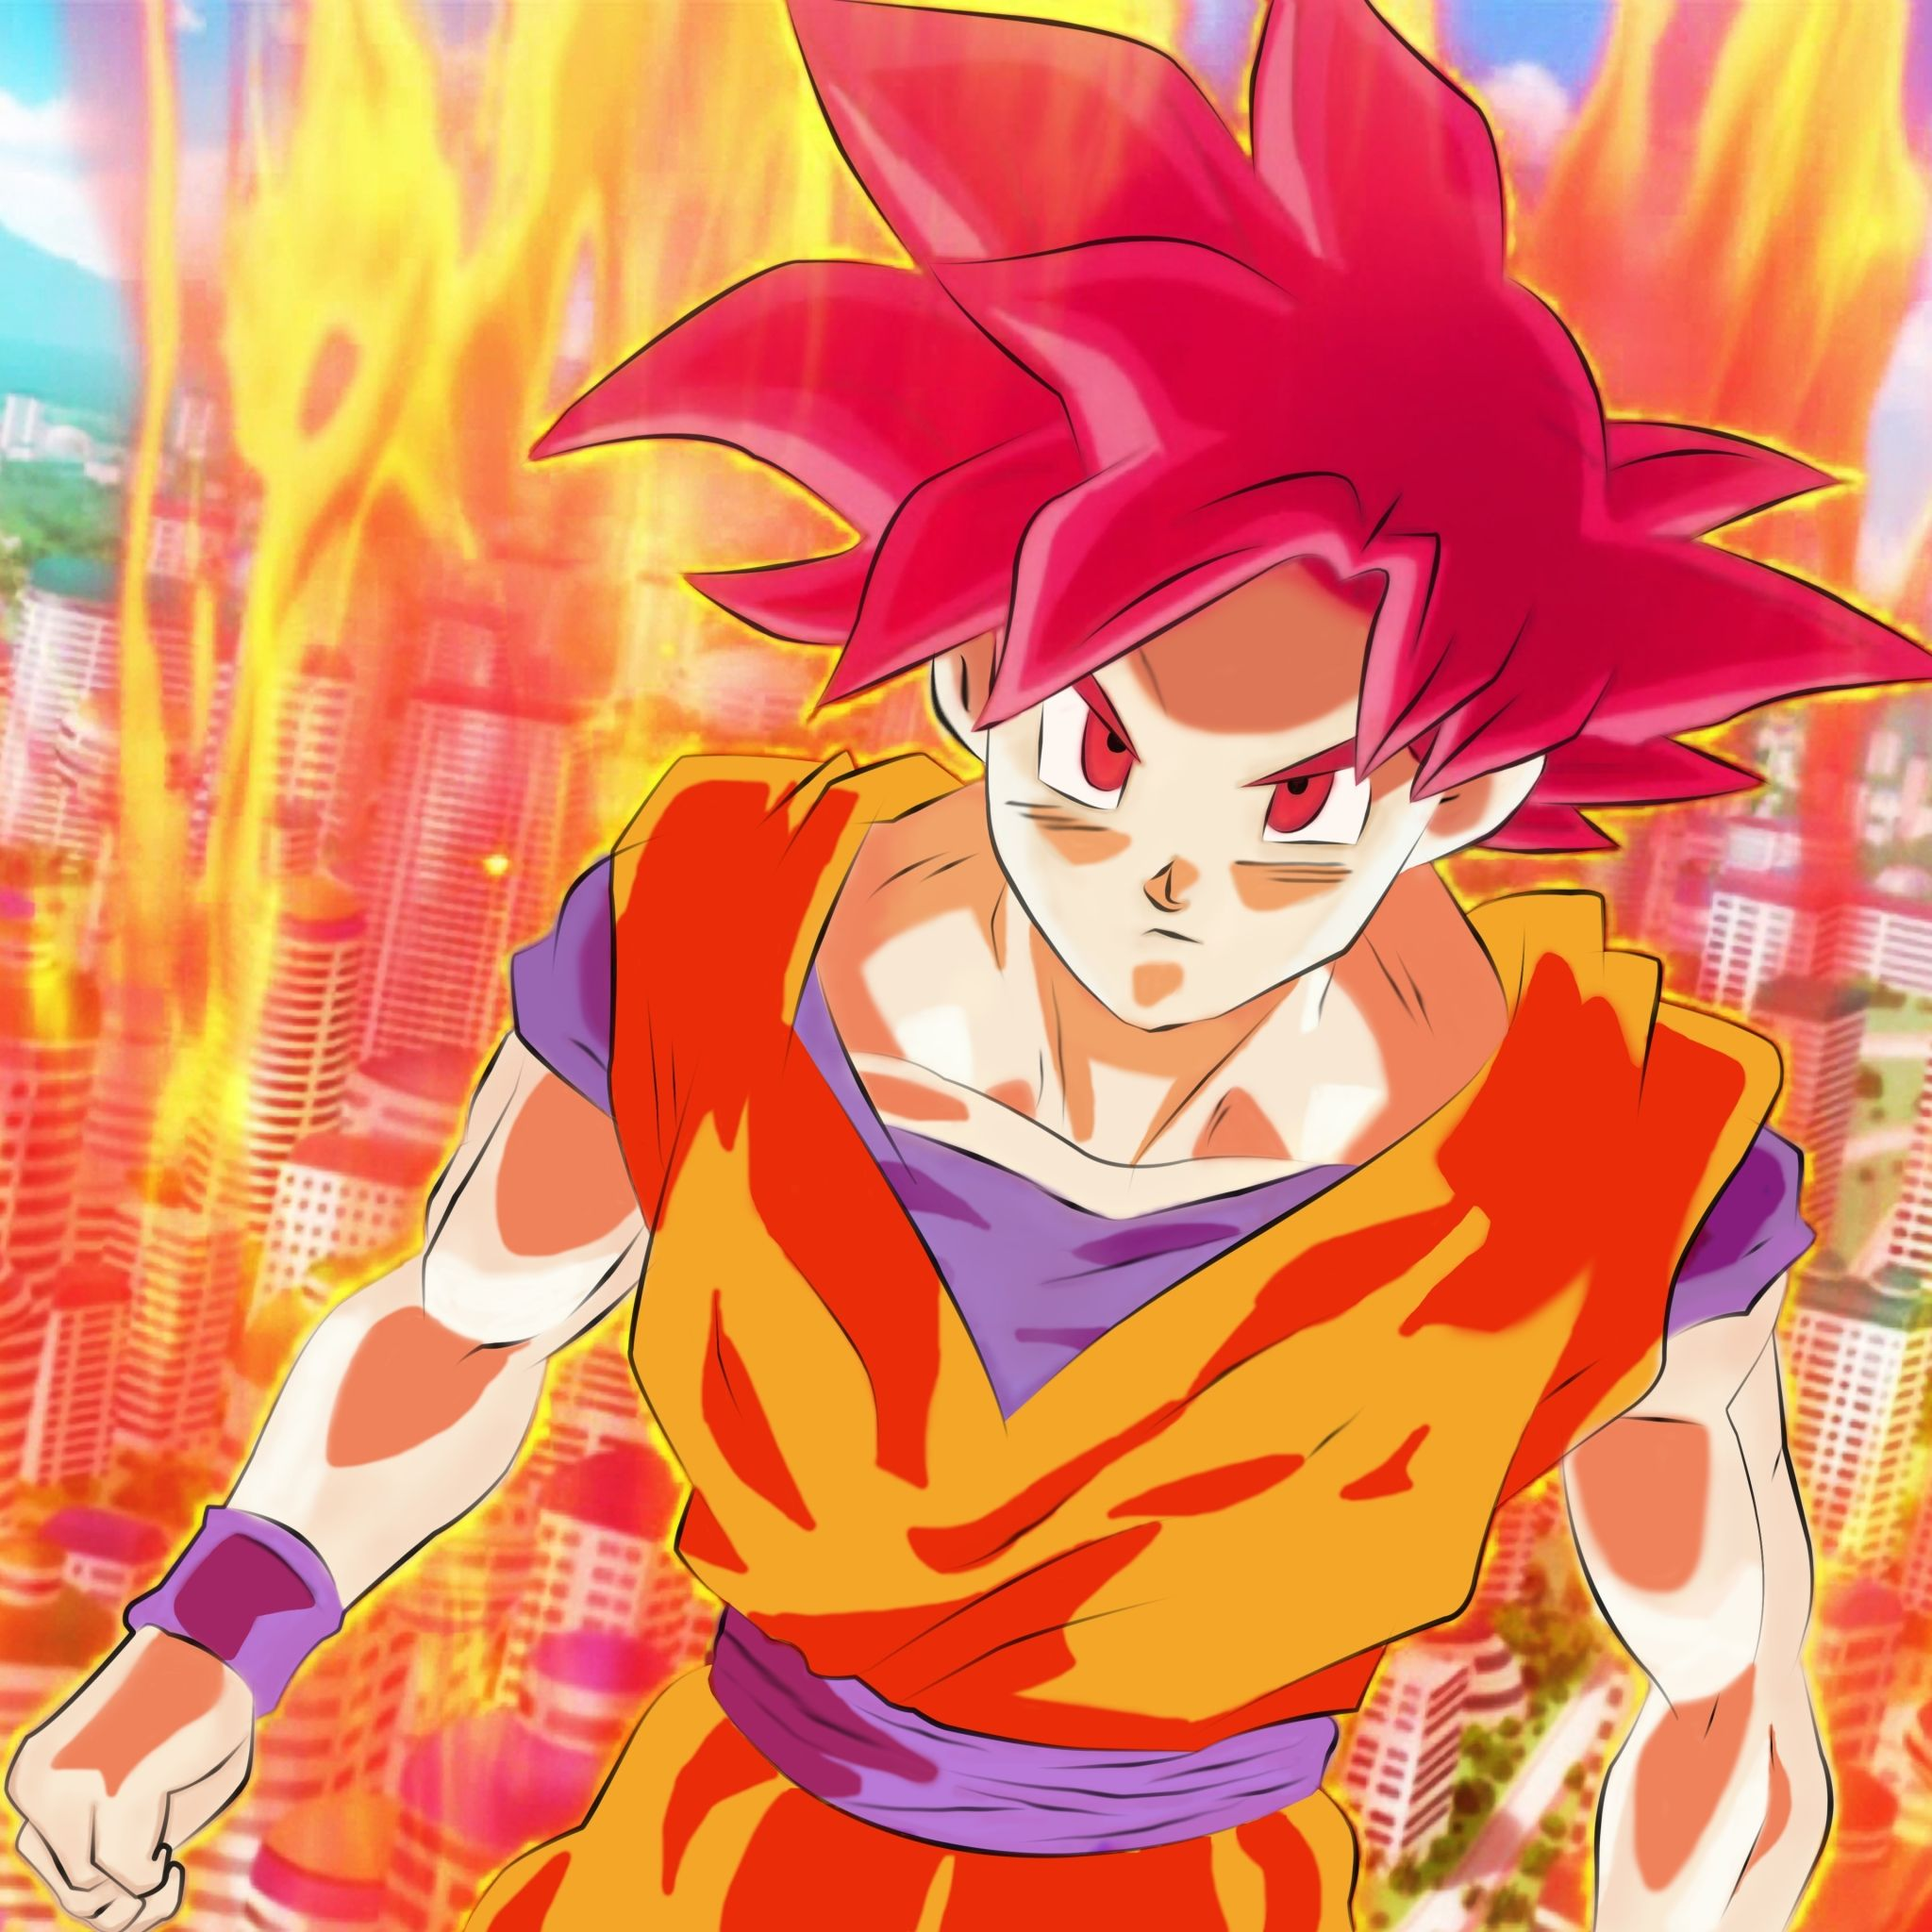 Angry Goku Tap to see more awesomely cool Dragon Ball Z